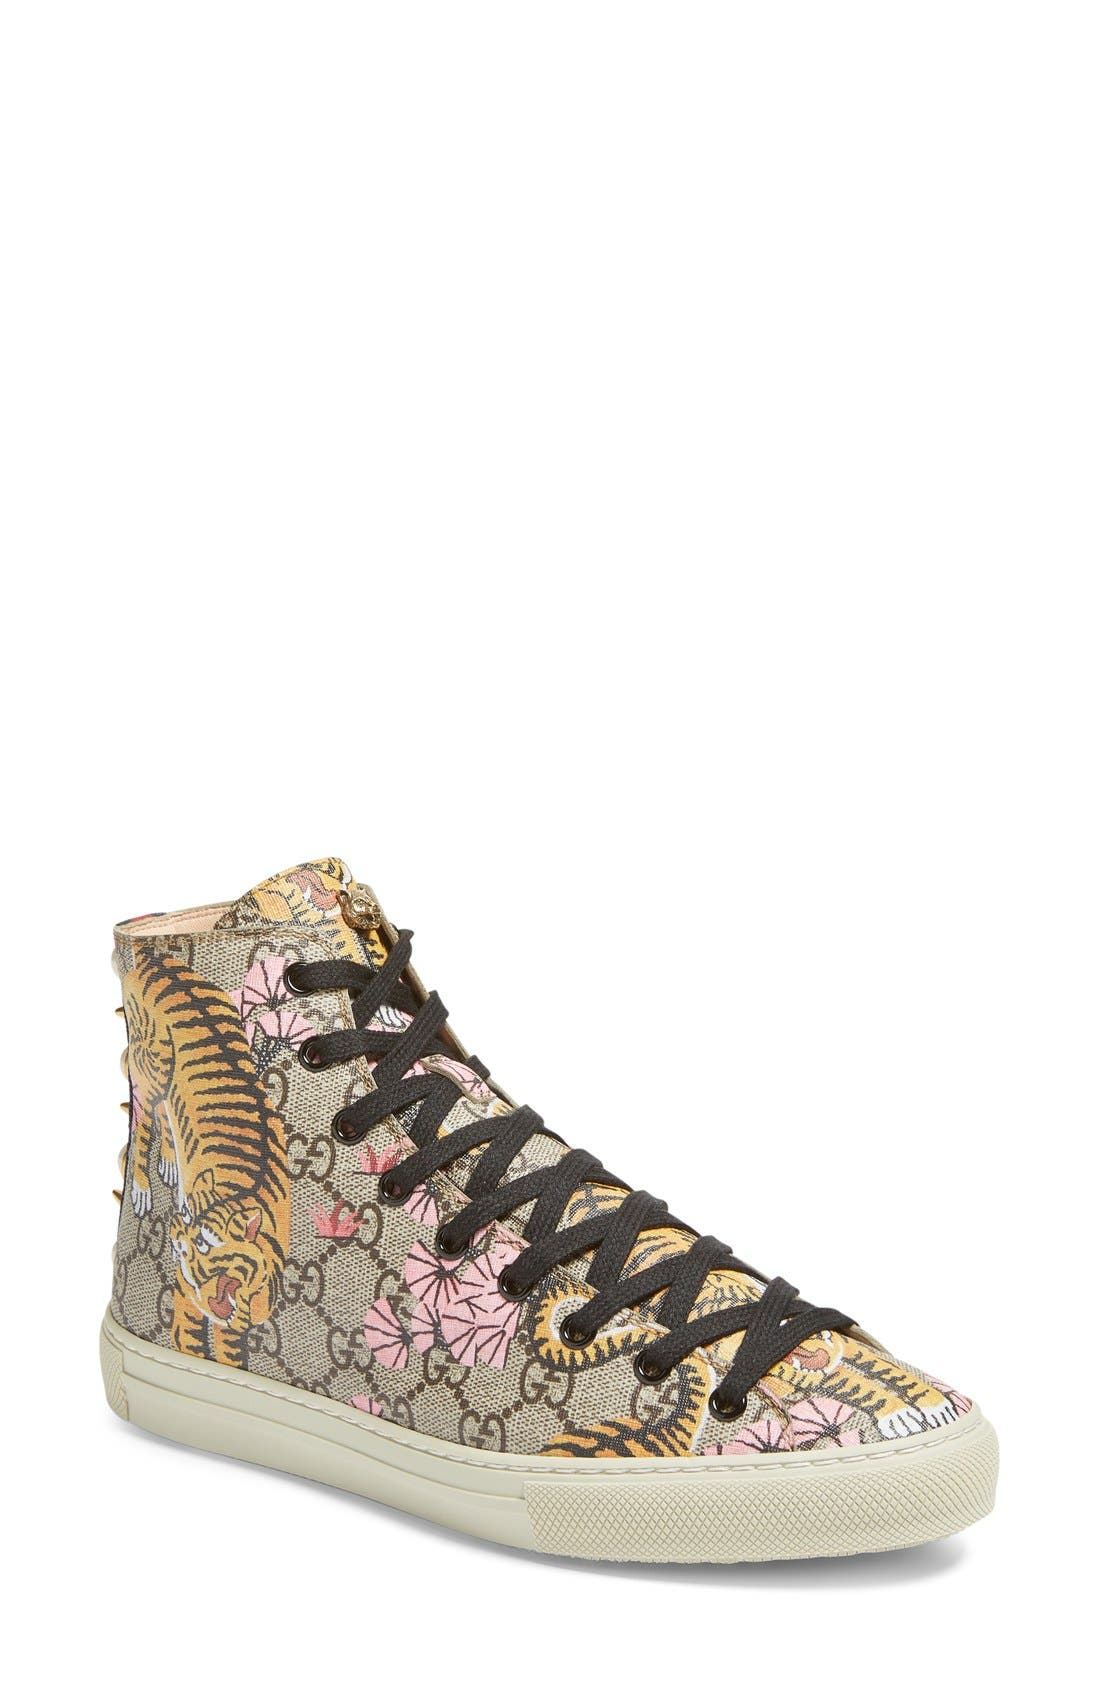 Alternate Image 1 Selected - Gucci Major Tiger High Top Sneaker (Women)